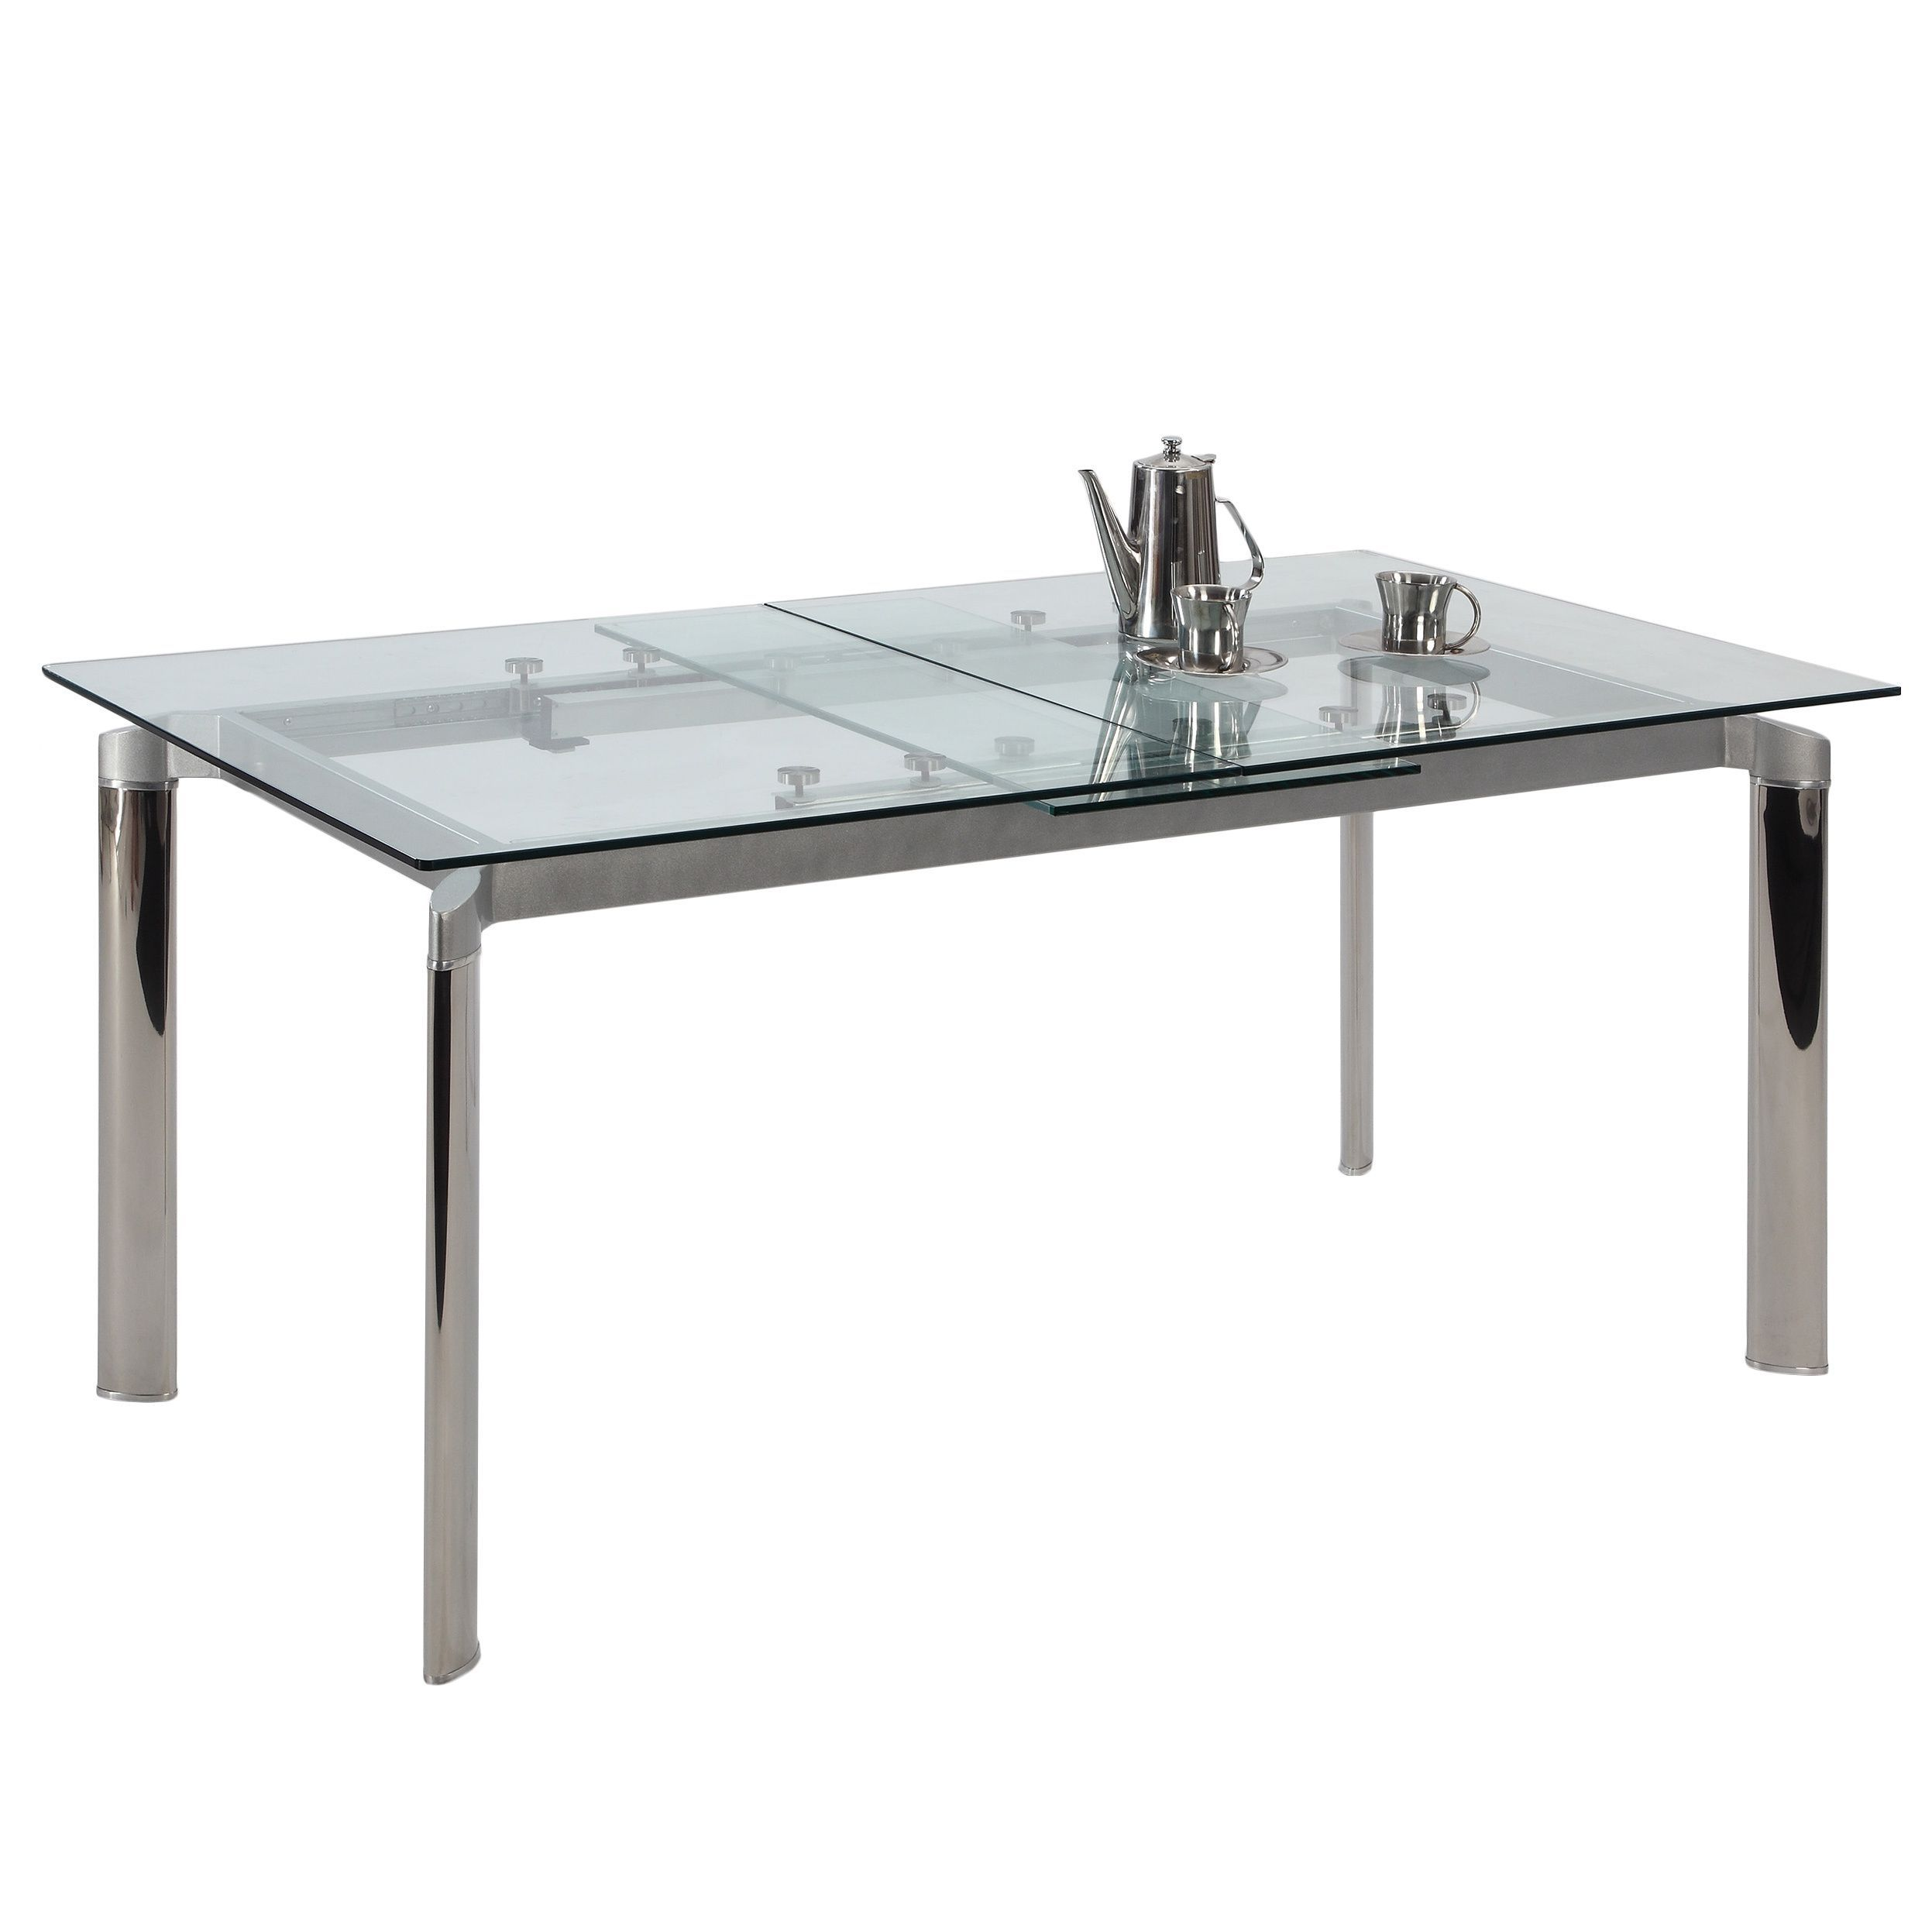 Glastisch Tempered Update Your Space With This Unique Tamra Glass Dining Table The